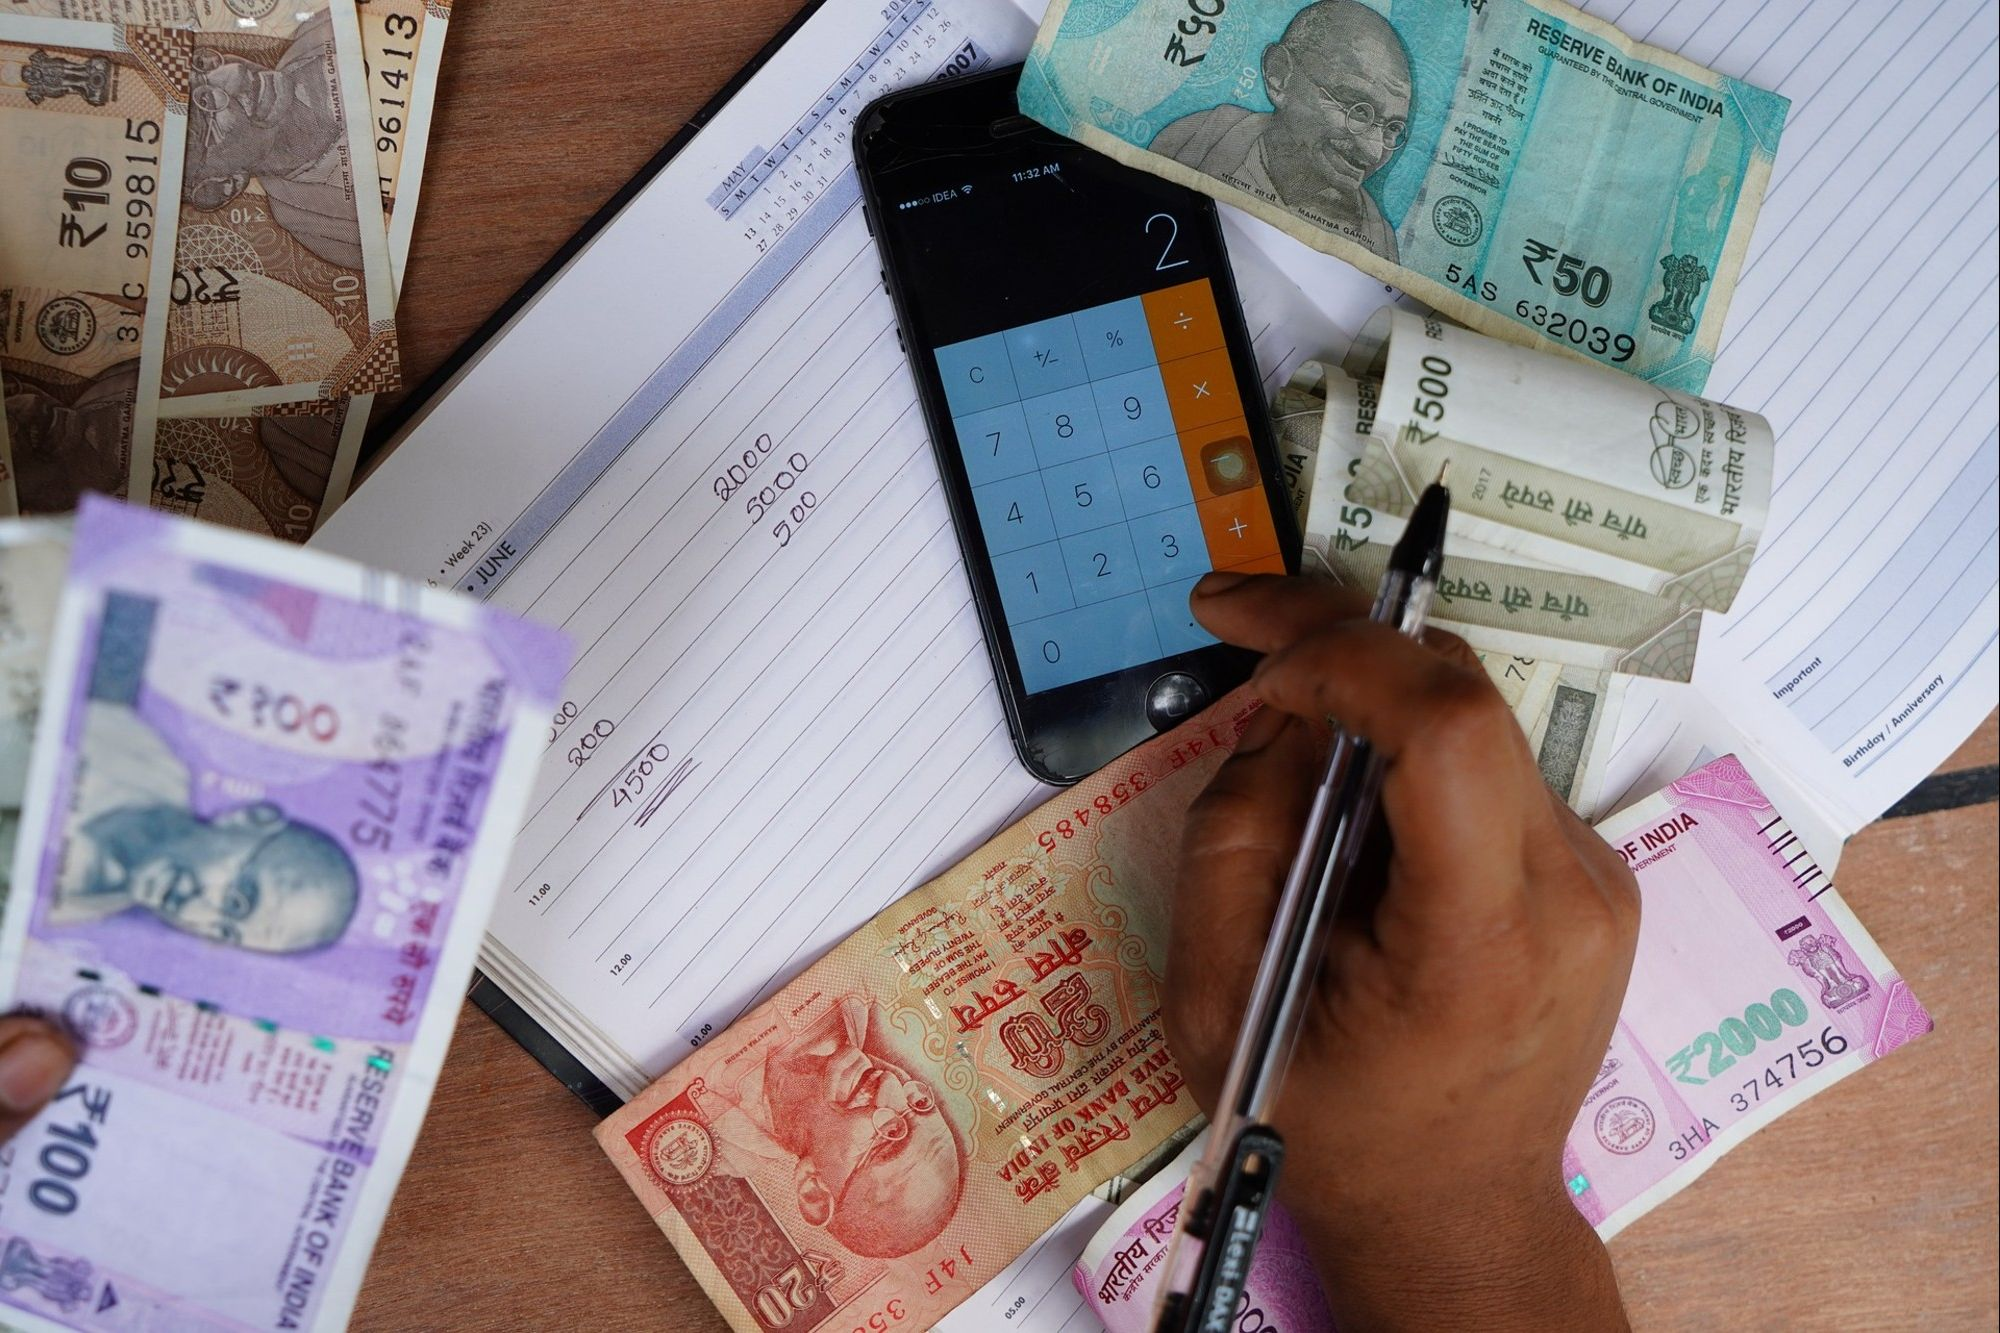 Most People Borrow for Emergencies: Report